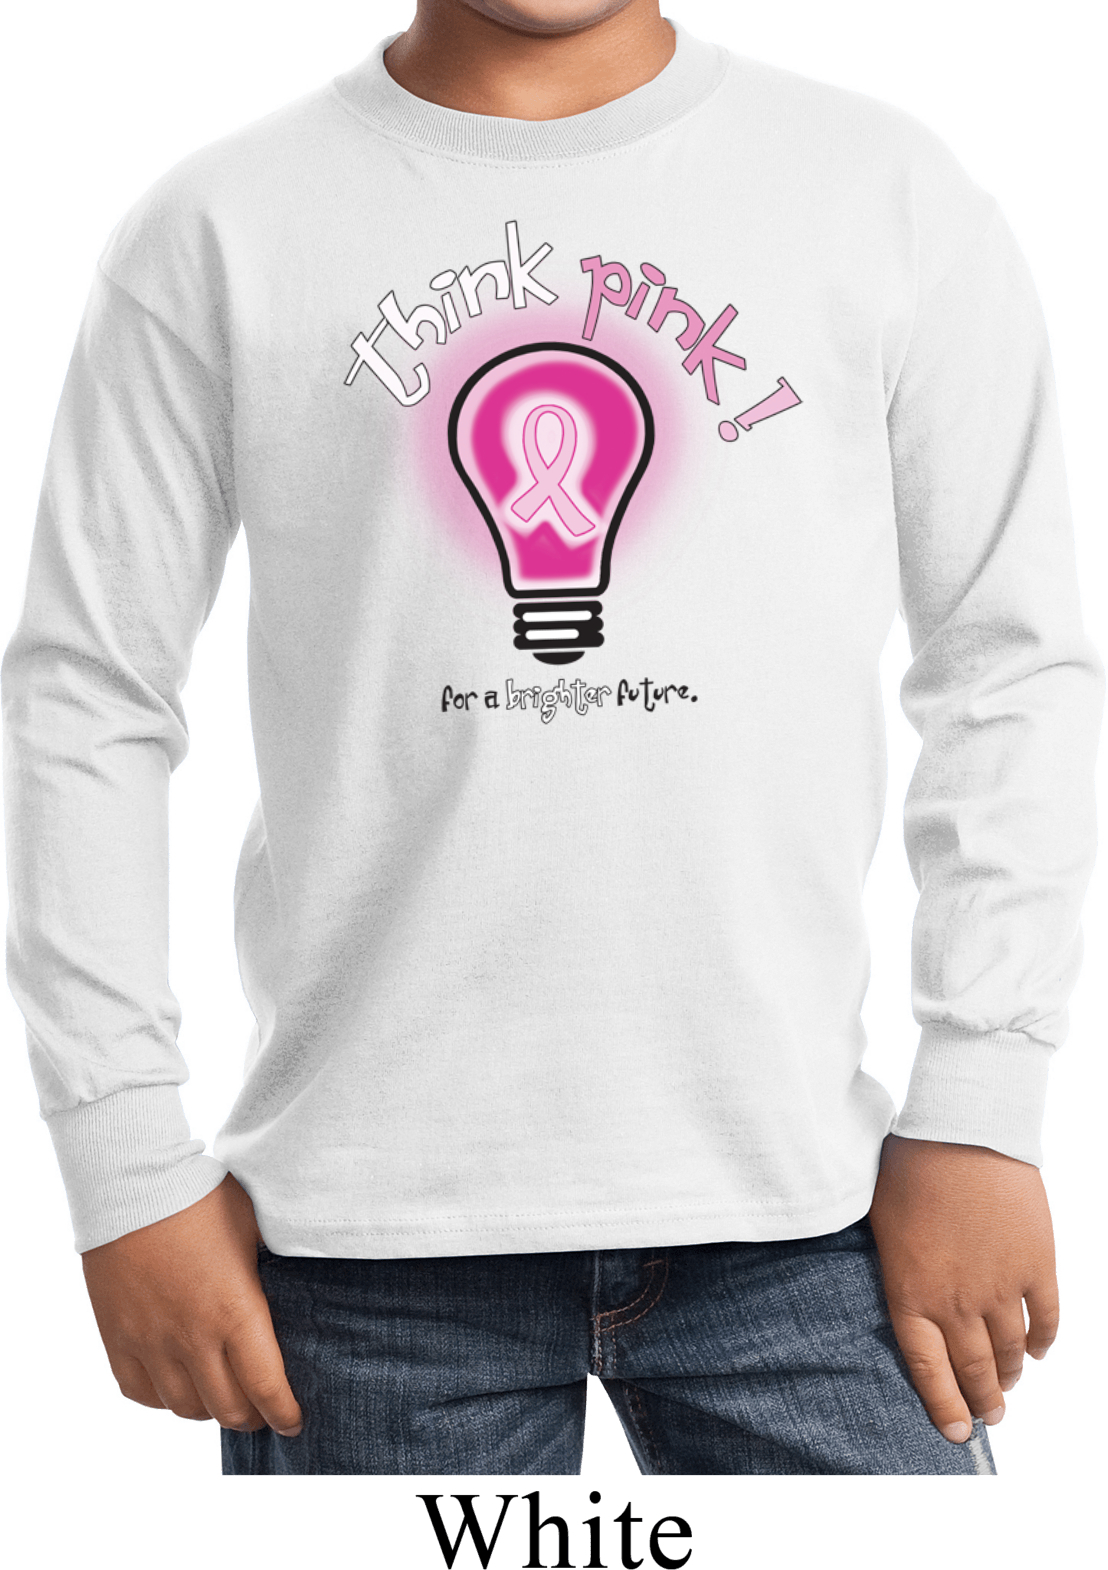 Something is. T shirts for breast cancer awareness